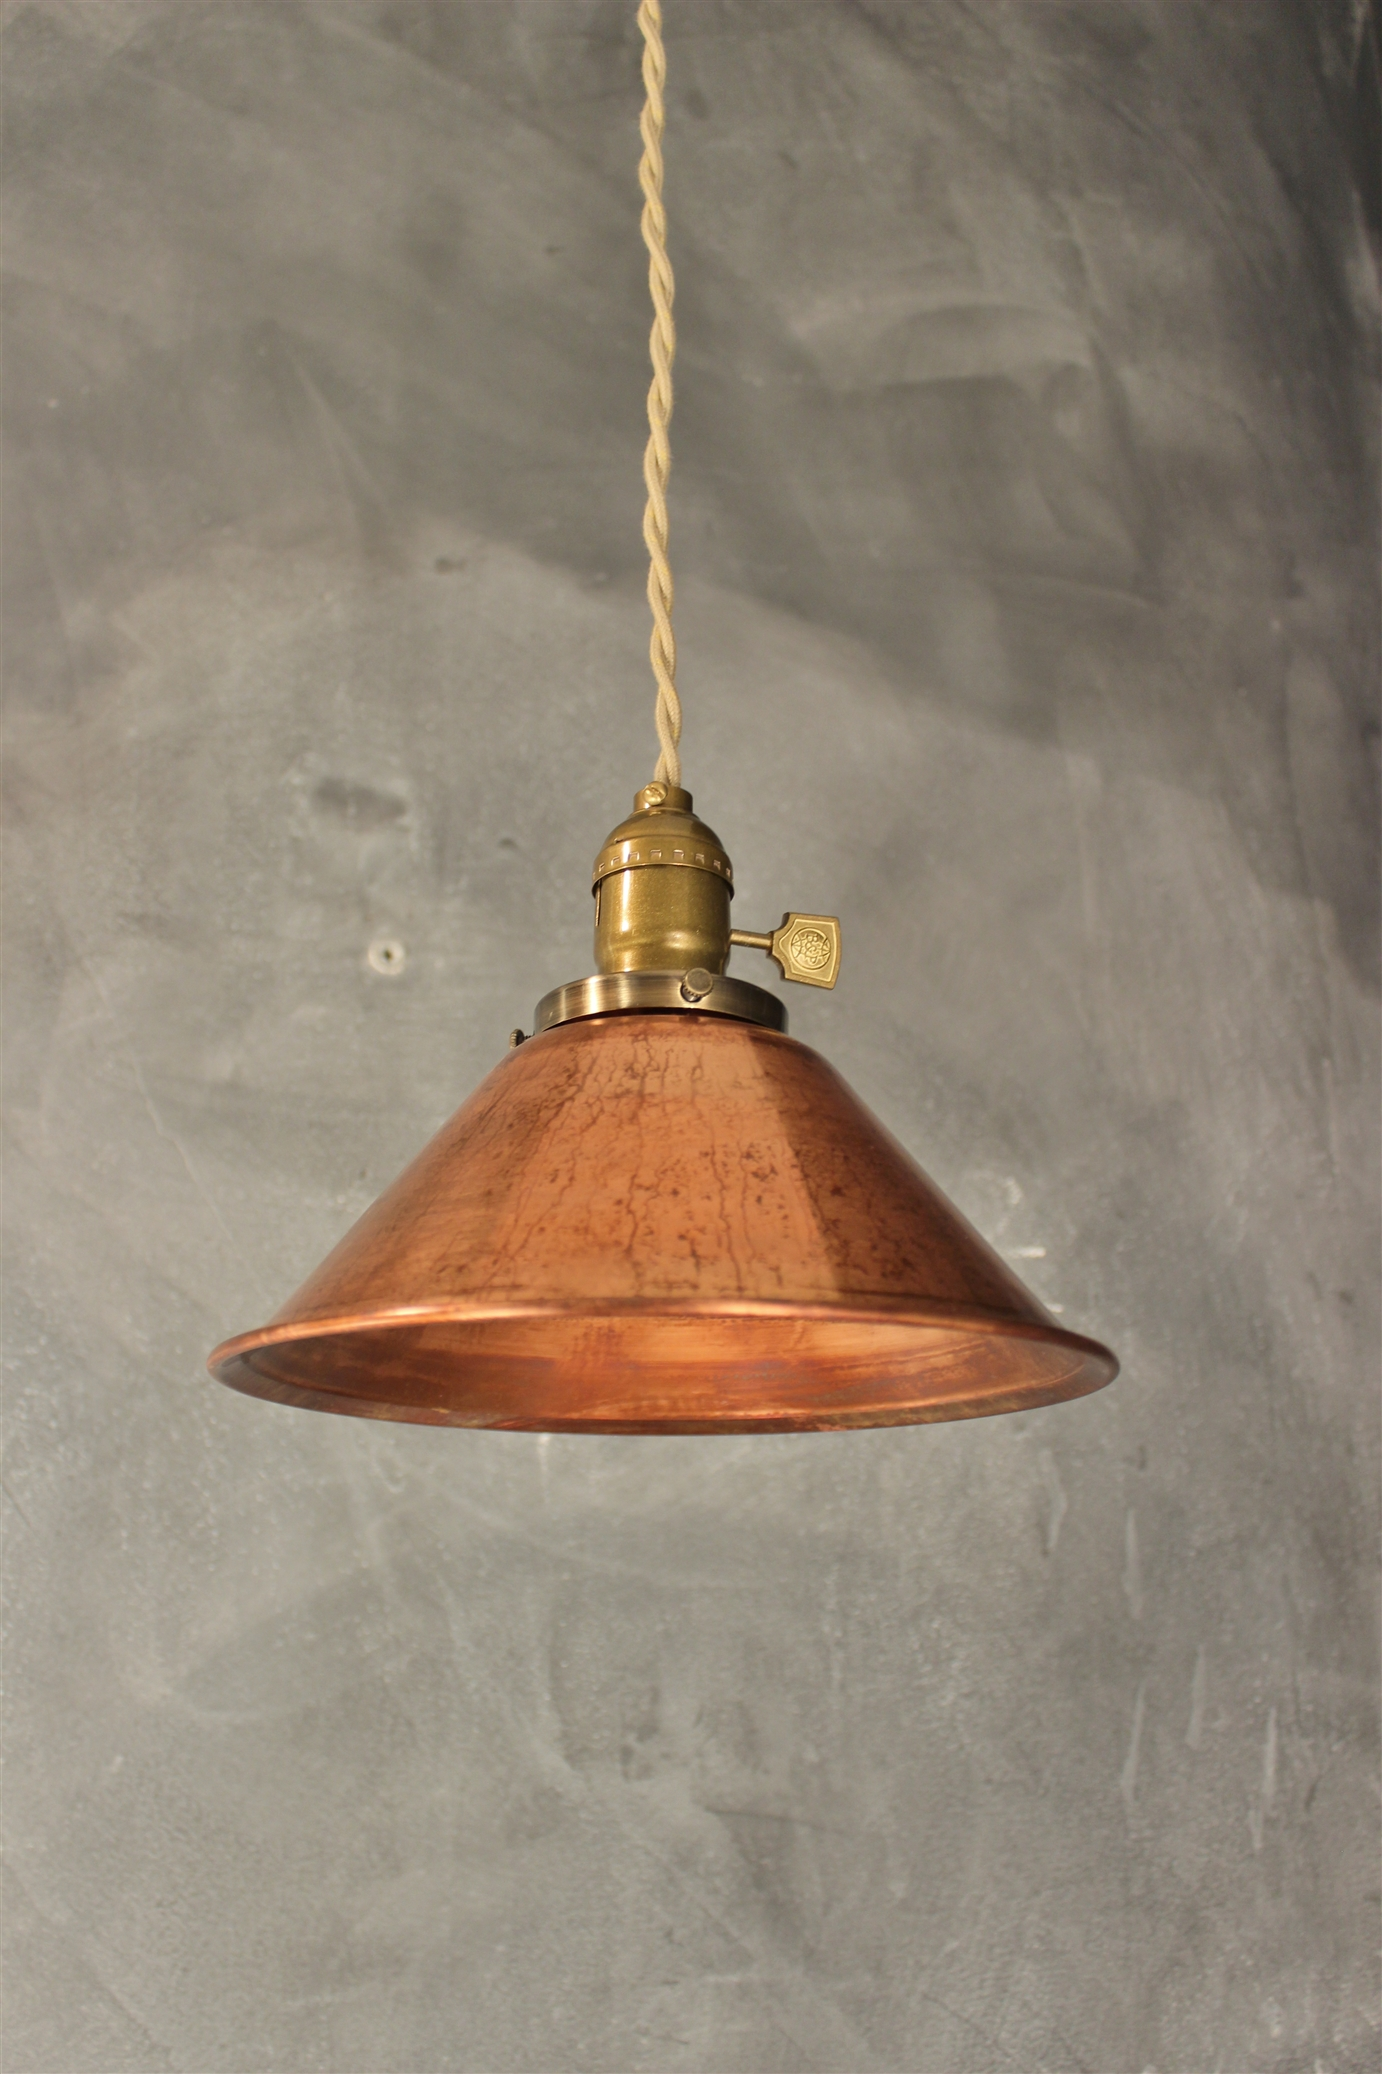 Industrial pendant lamp w weathered copper lamp shade vintage industrial pendant lamp w weathered copper lamp shade vintage factory light thumbnail 1 aloadofball Gallery